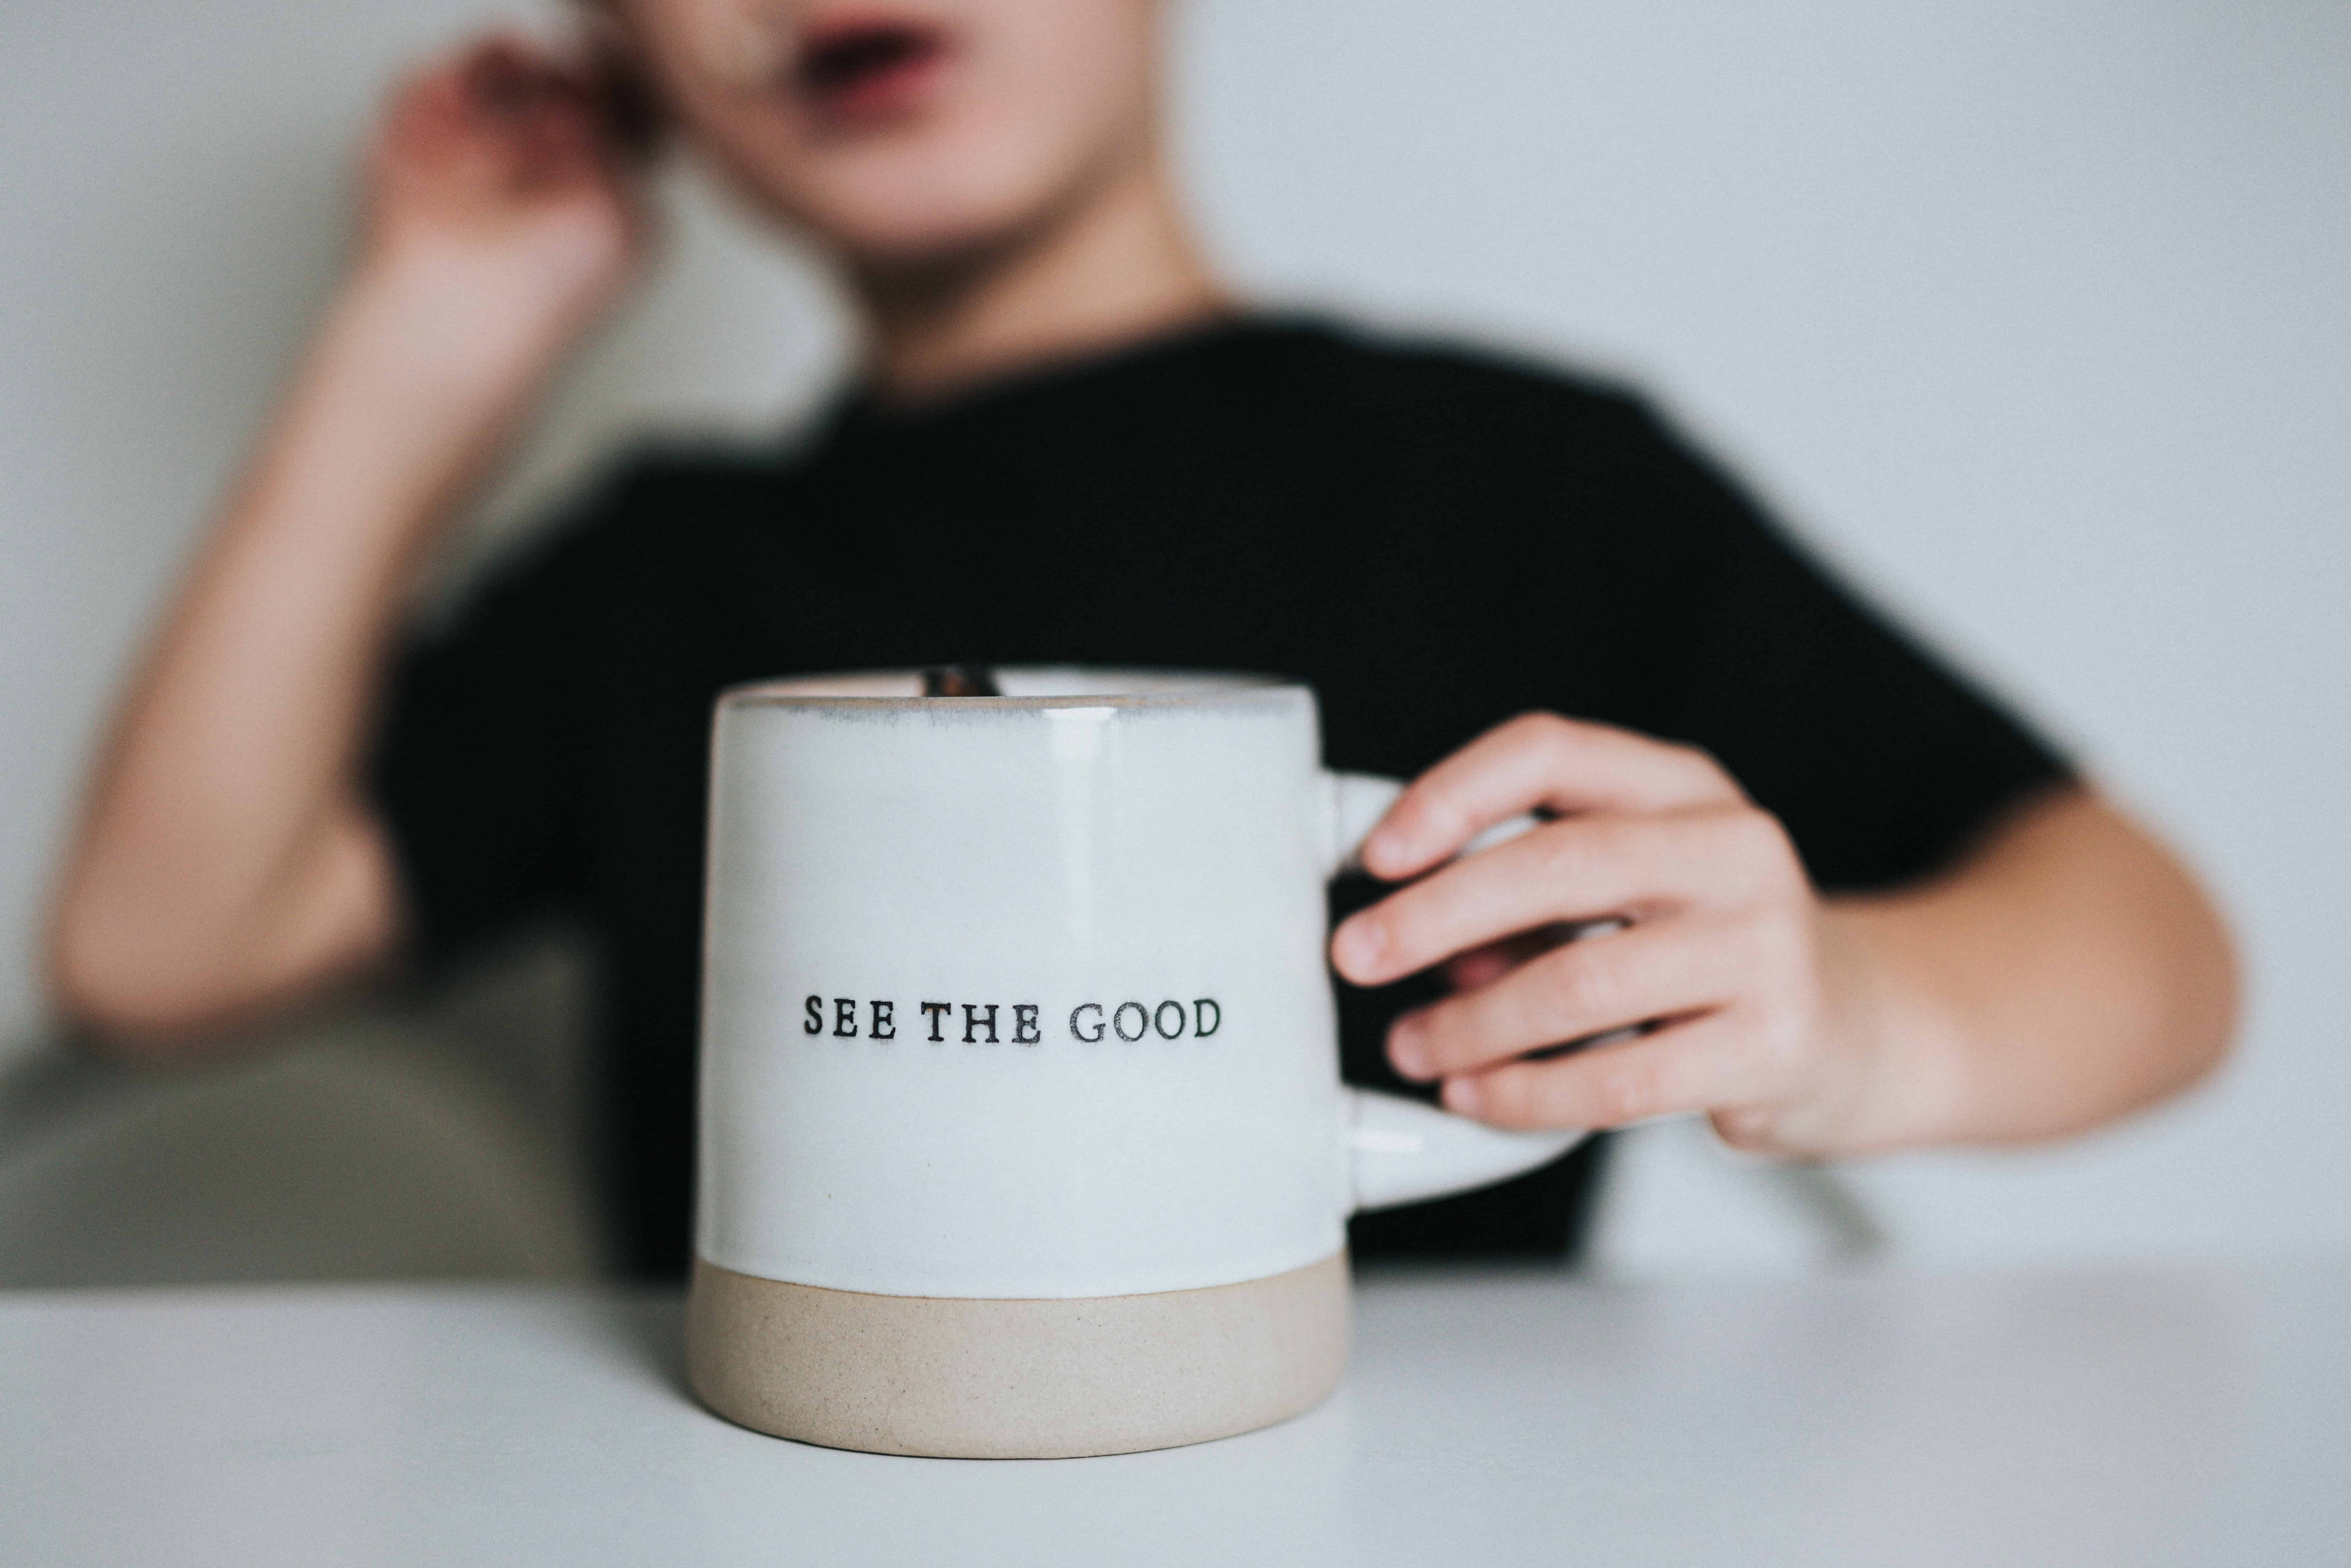 How To Focus on the Good Things In Life (When Times Are Tough)